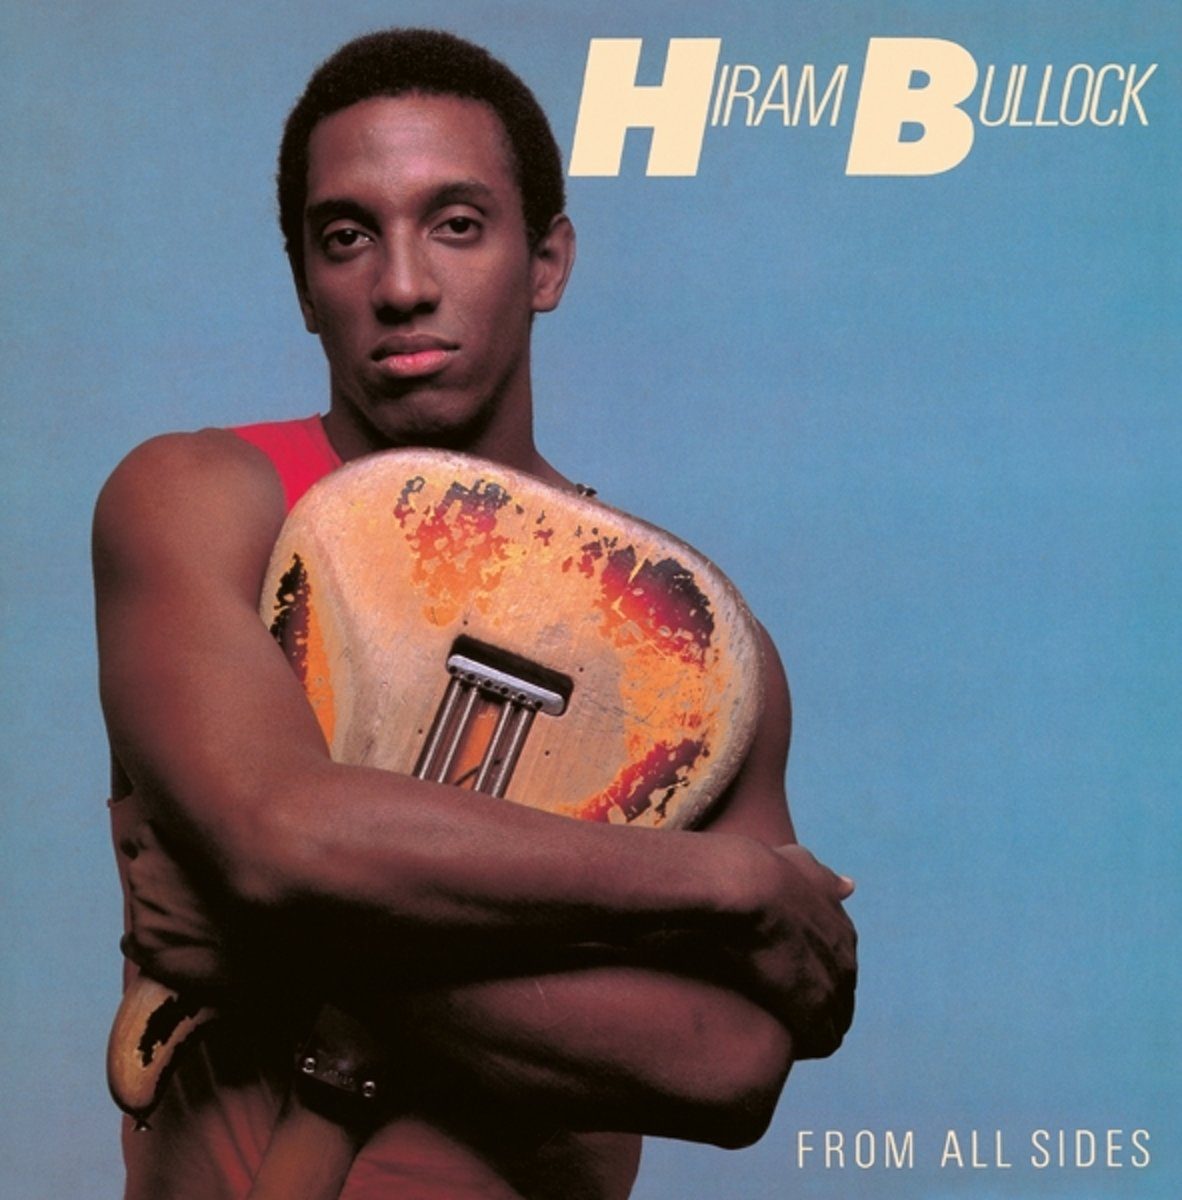 I have sold a Hiram Bullock CD album to a new customer from South Korea, come visit my discogs store at ---► https://www.discogs.com/seller/peeano/profile …   Hiram Bullock – From All Sides Label: Atlantic – 7 81685-2 Format: CD, Album Country: US Released: 1986 Genre: Jazz Style: Fusion, Jazz-Funkpic.twitter.com/zFW8HijSR7